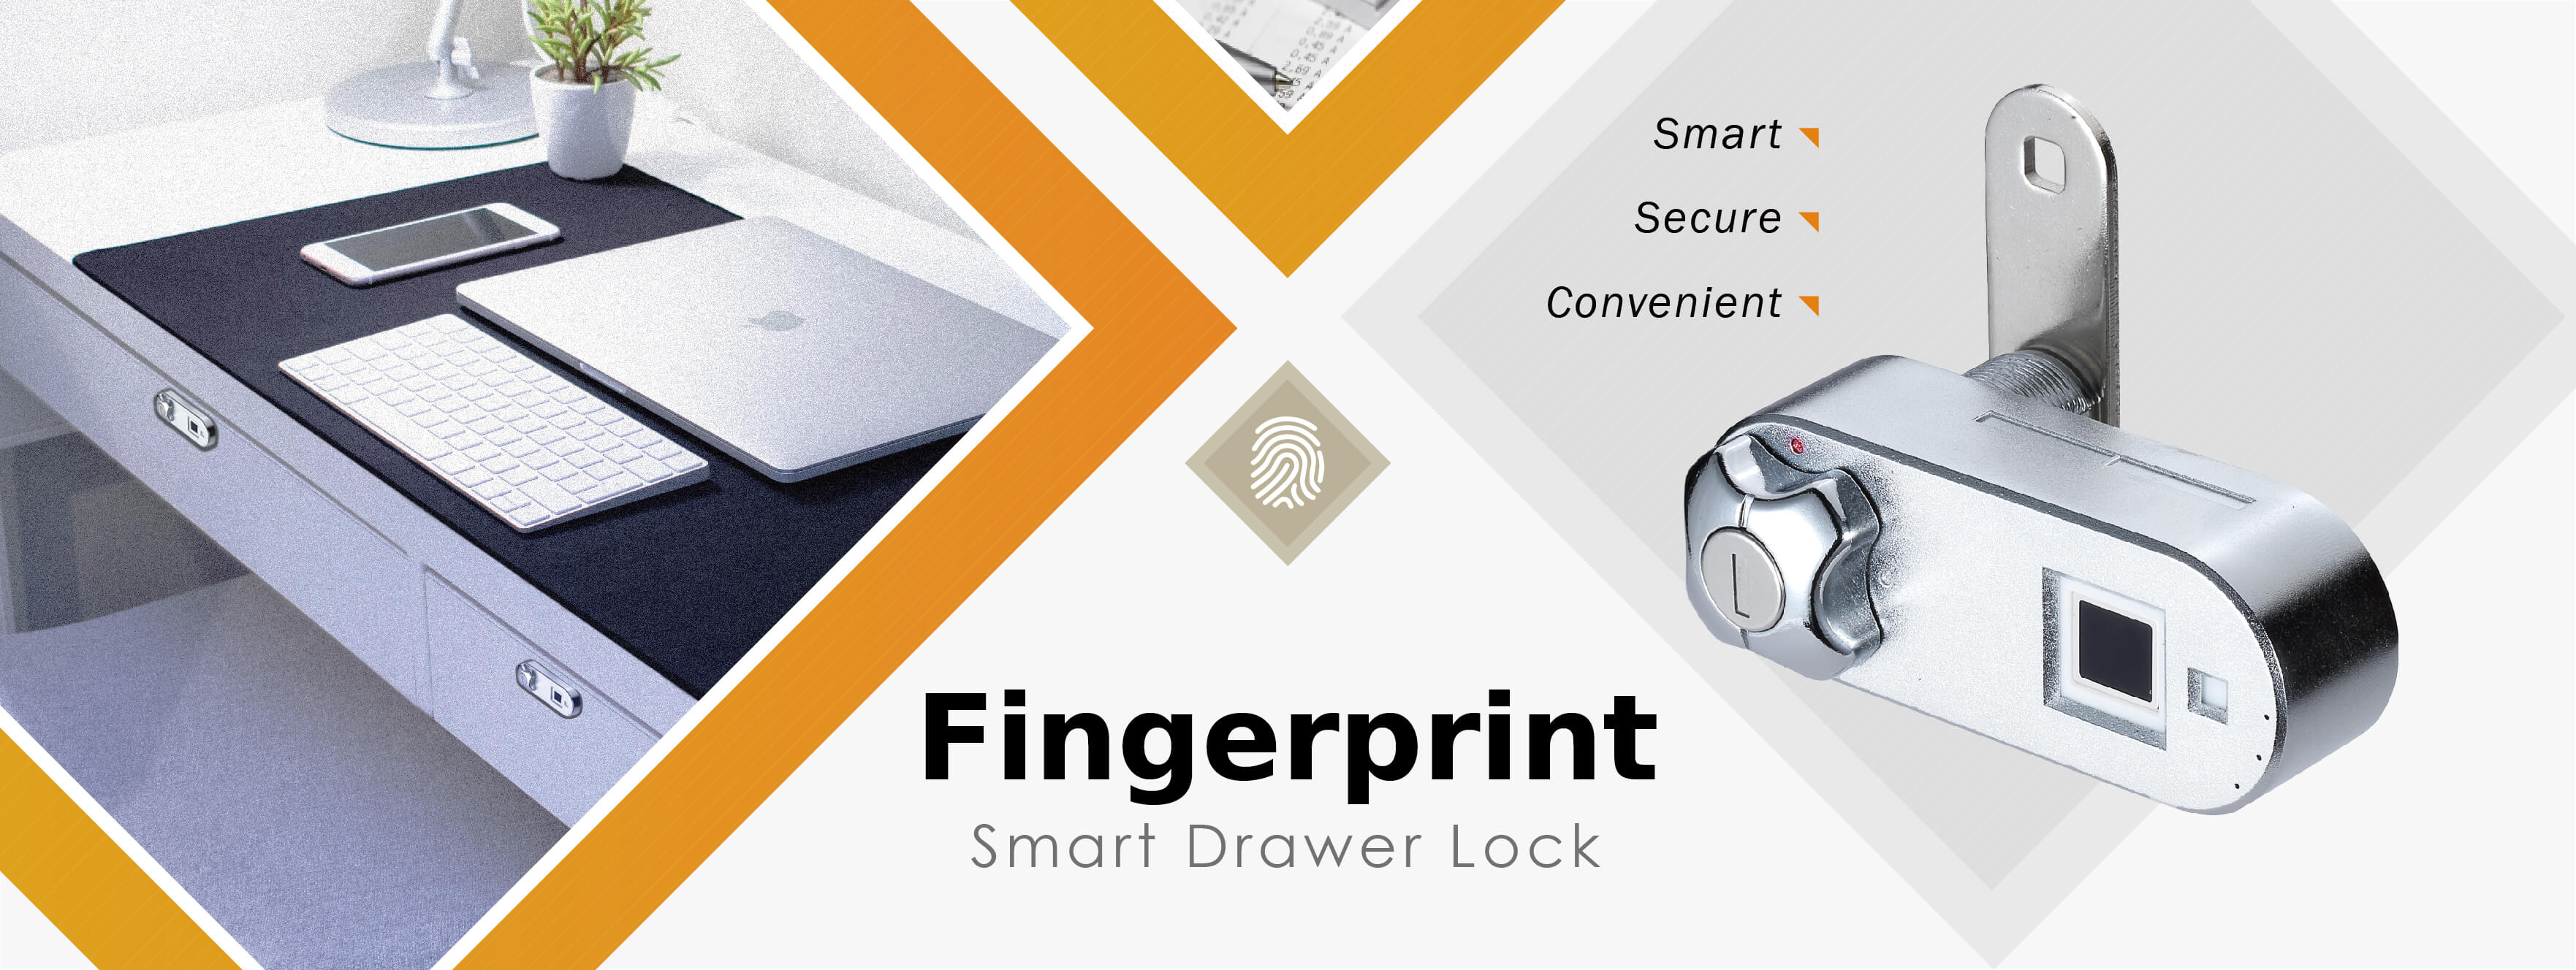 Fingerprint Smart Drawer Lock | Midas Touch